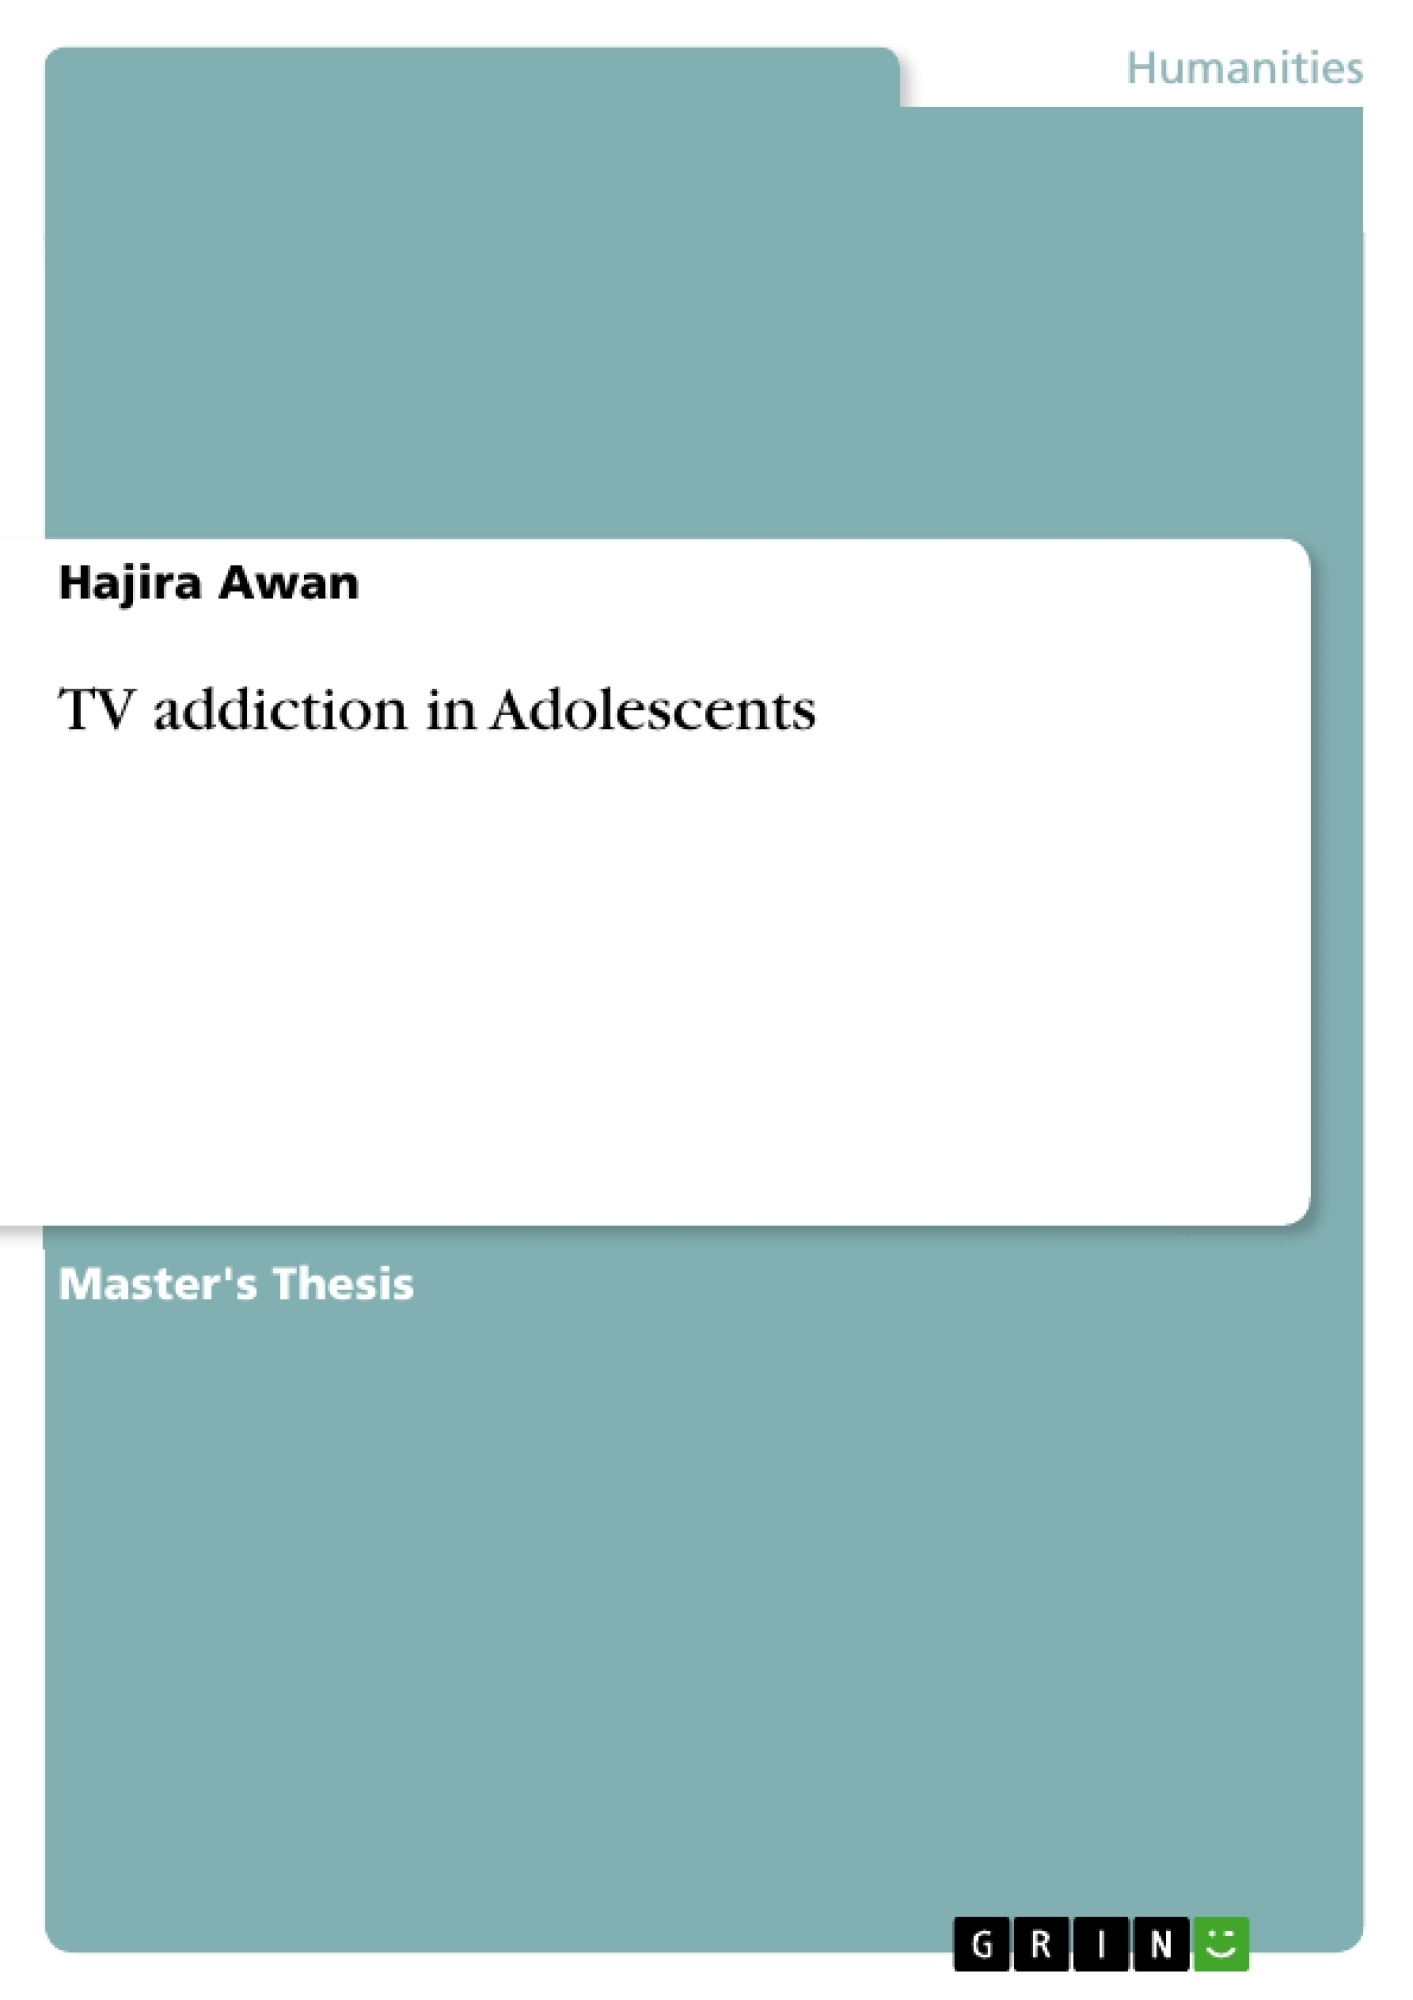 004 Essay Example Tv Addiction For Bsc 286671 0 Beautiful Full